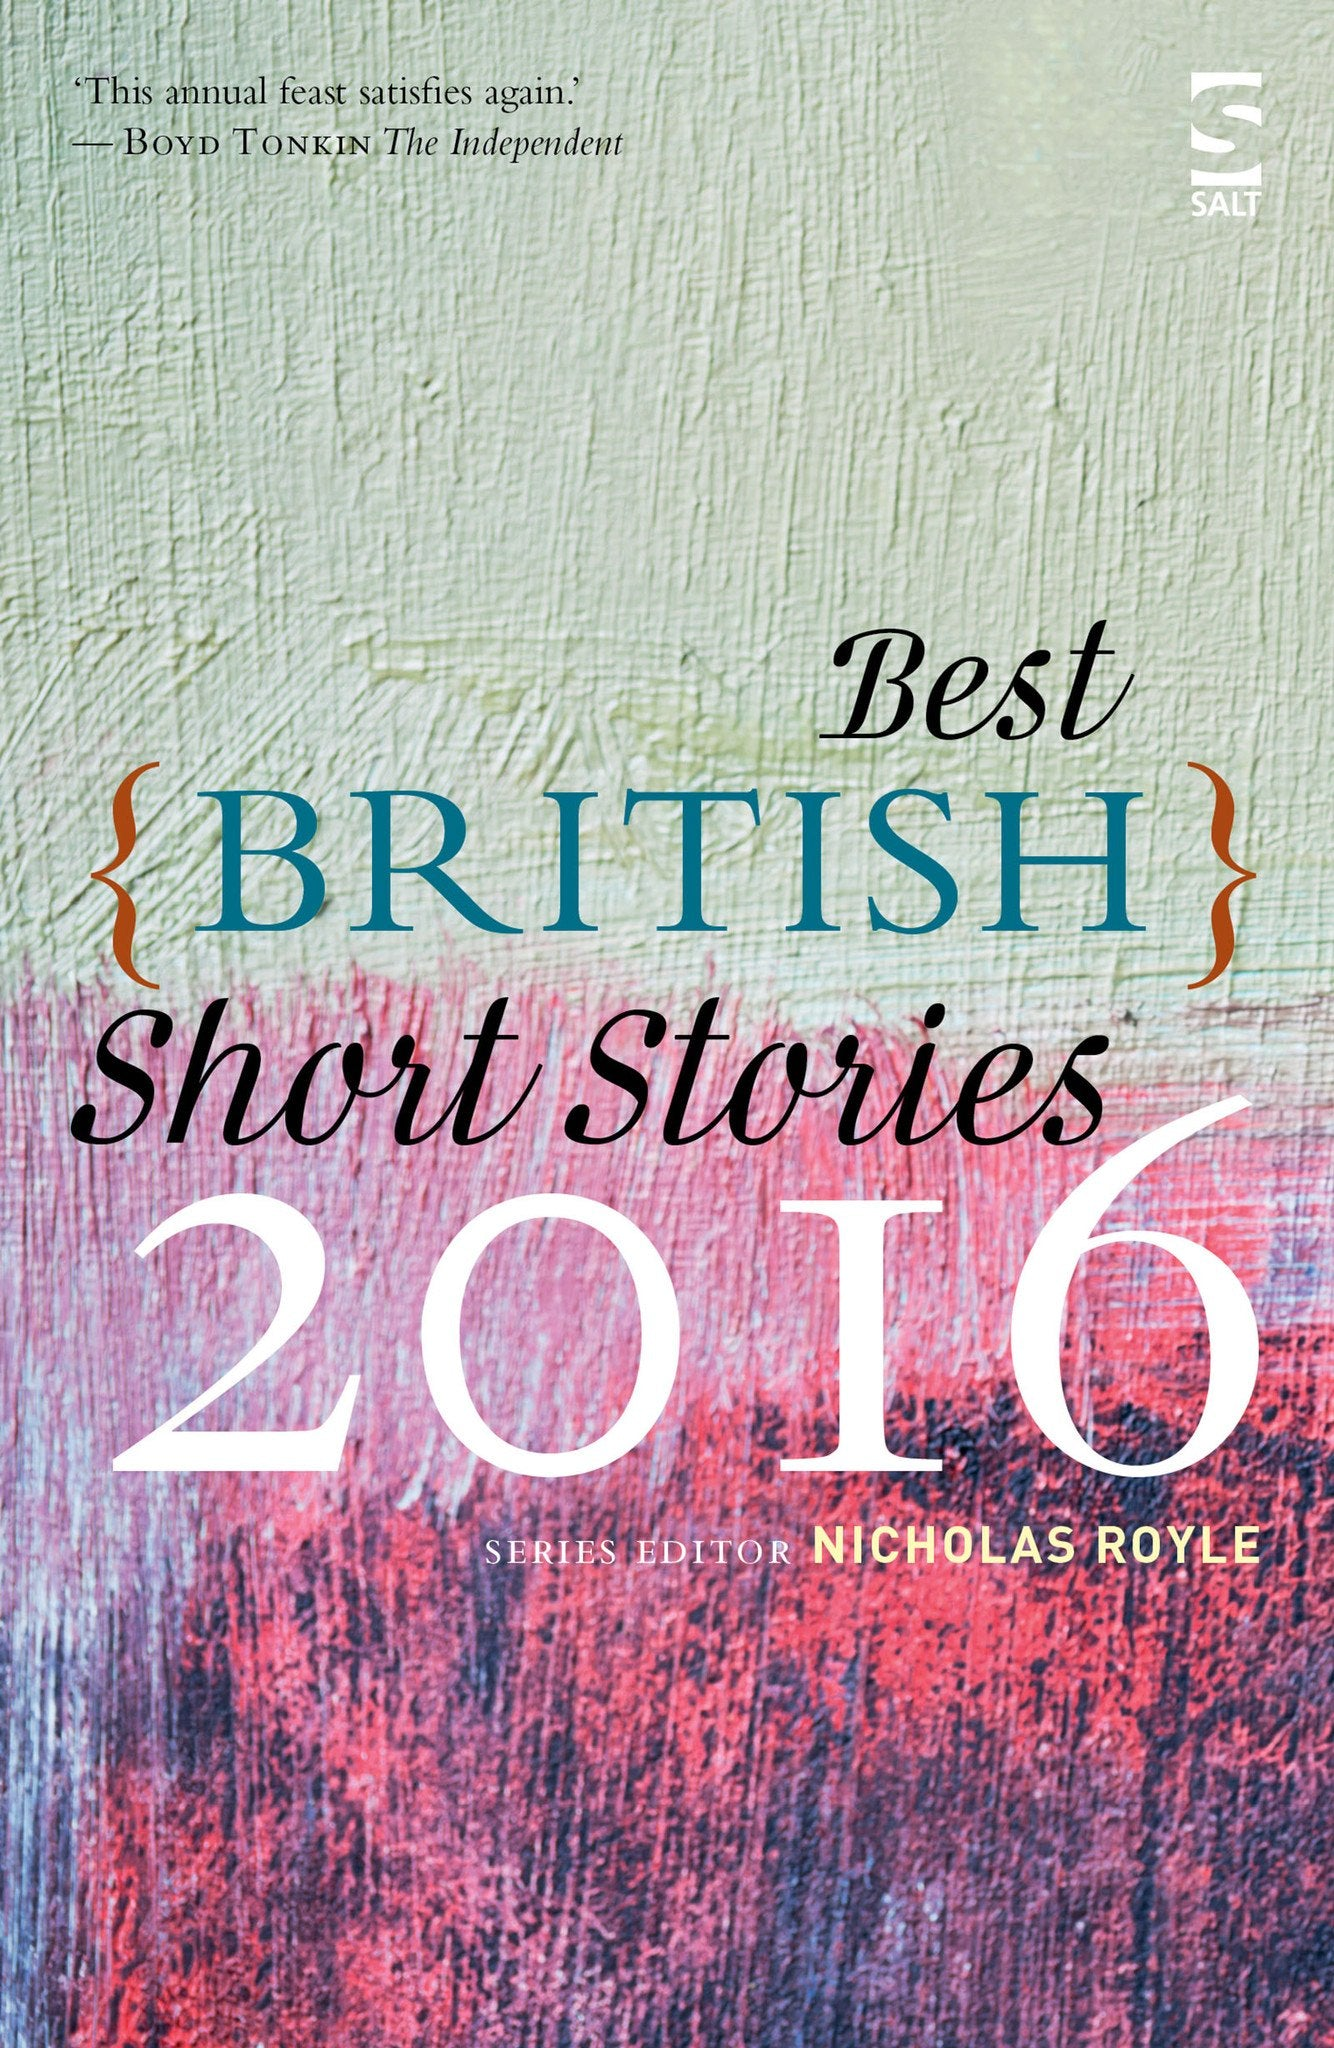 best british short stories nicholas royle salt best british short stories 2016 by nicholas royle